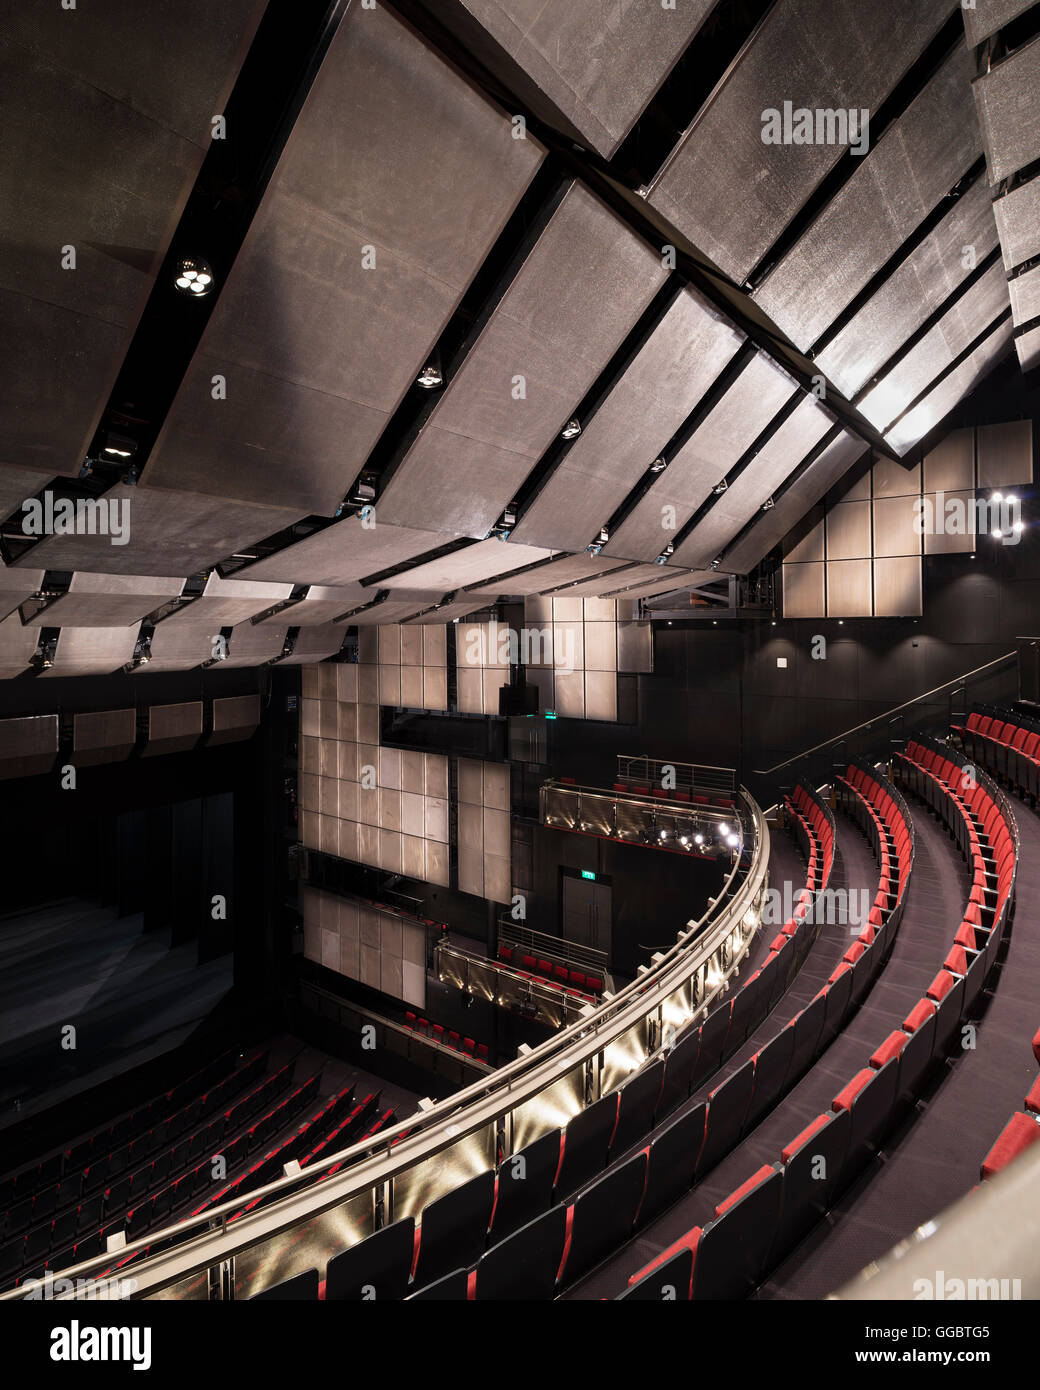 Oblique View Of Auditorium From Balcony Showing Acoustic